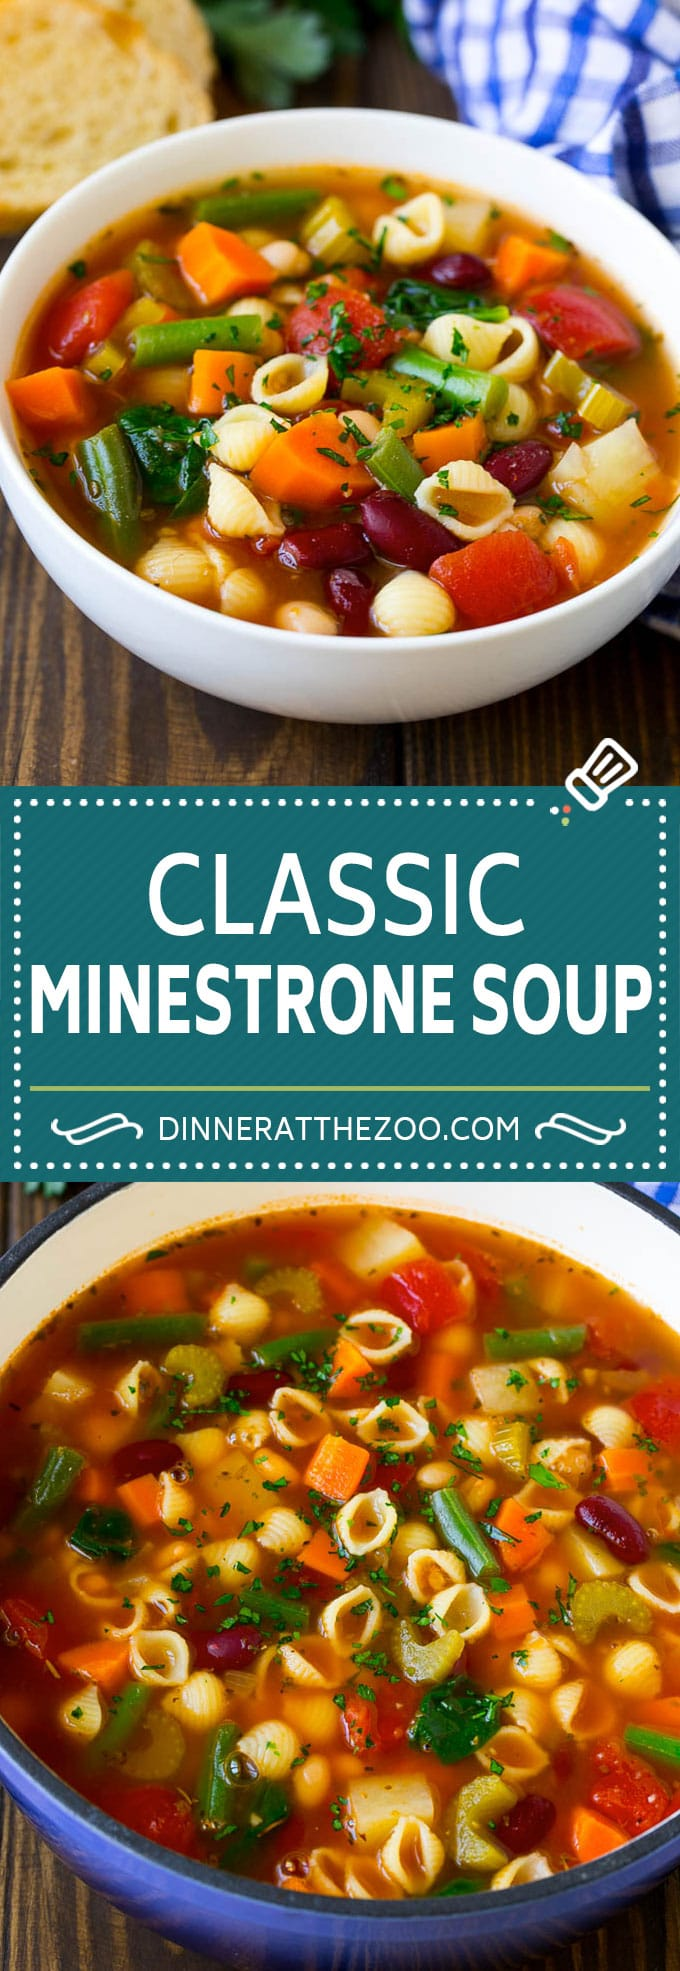 Minestrone Soup Recipe | Vegetable Soup | Vegetarian Soup #soup #minestrone #vegetables #vegetarian #onepotmeal #dinner #dinneratthezoo